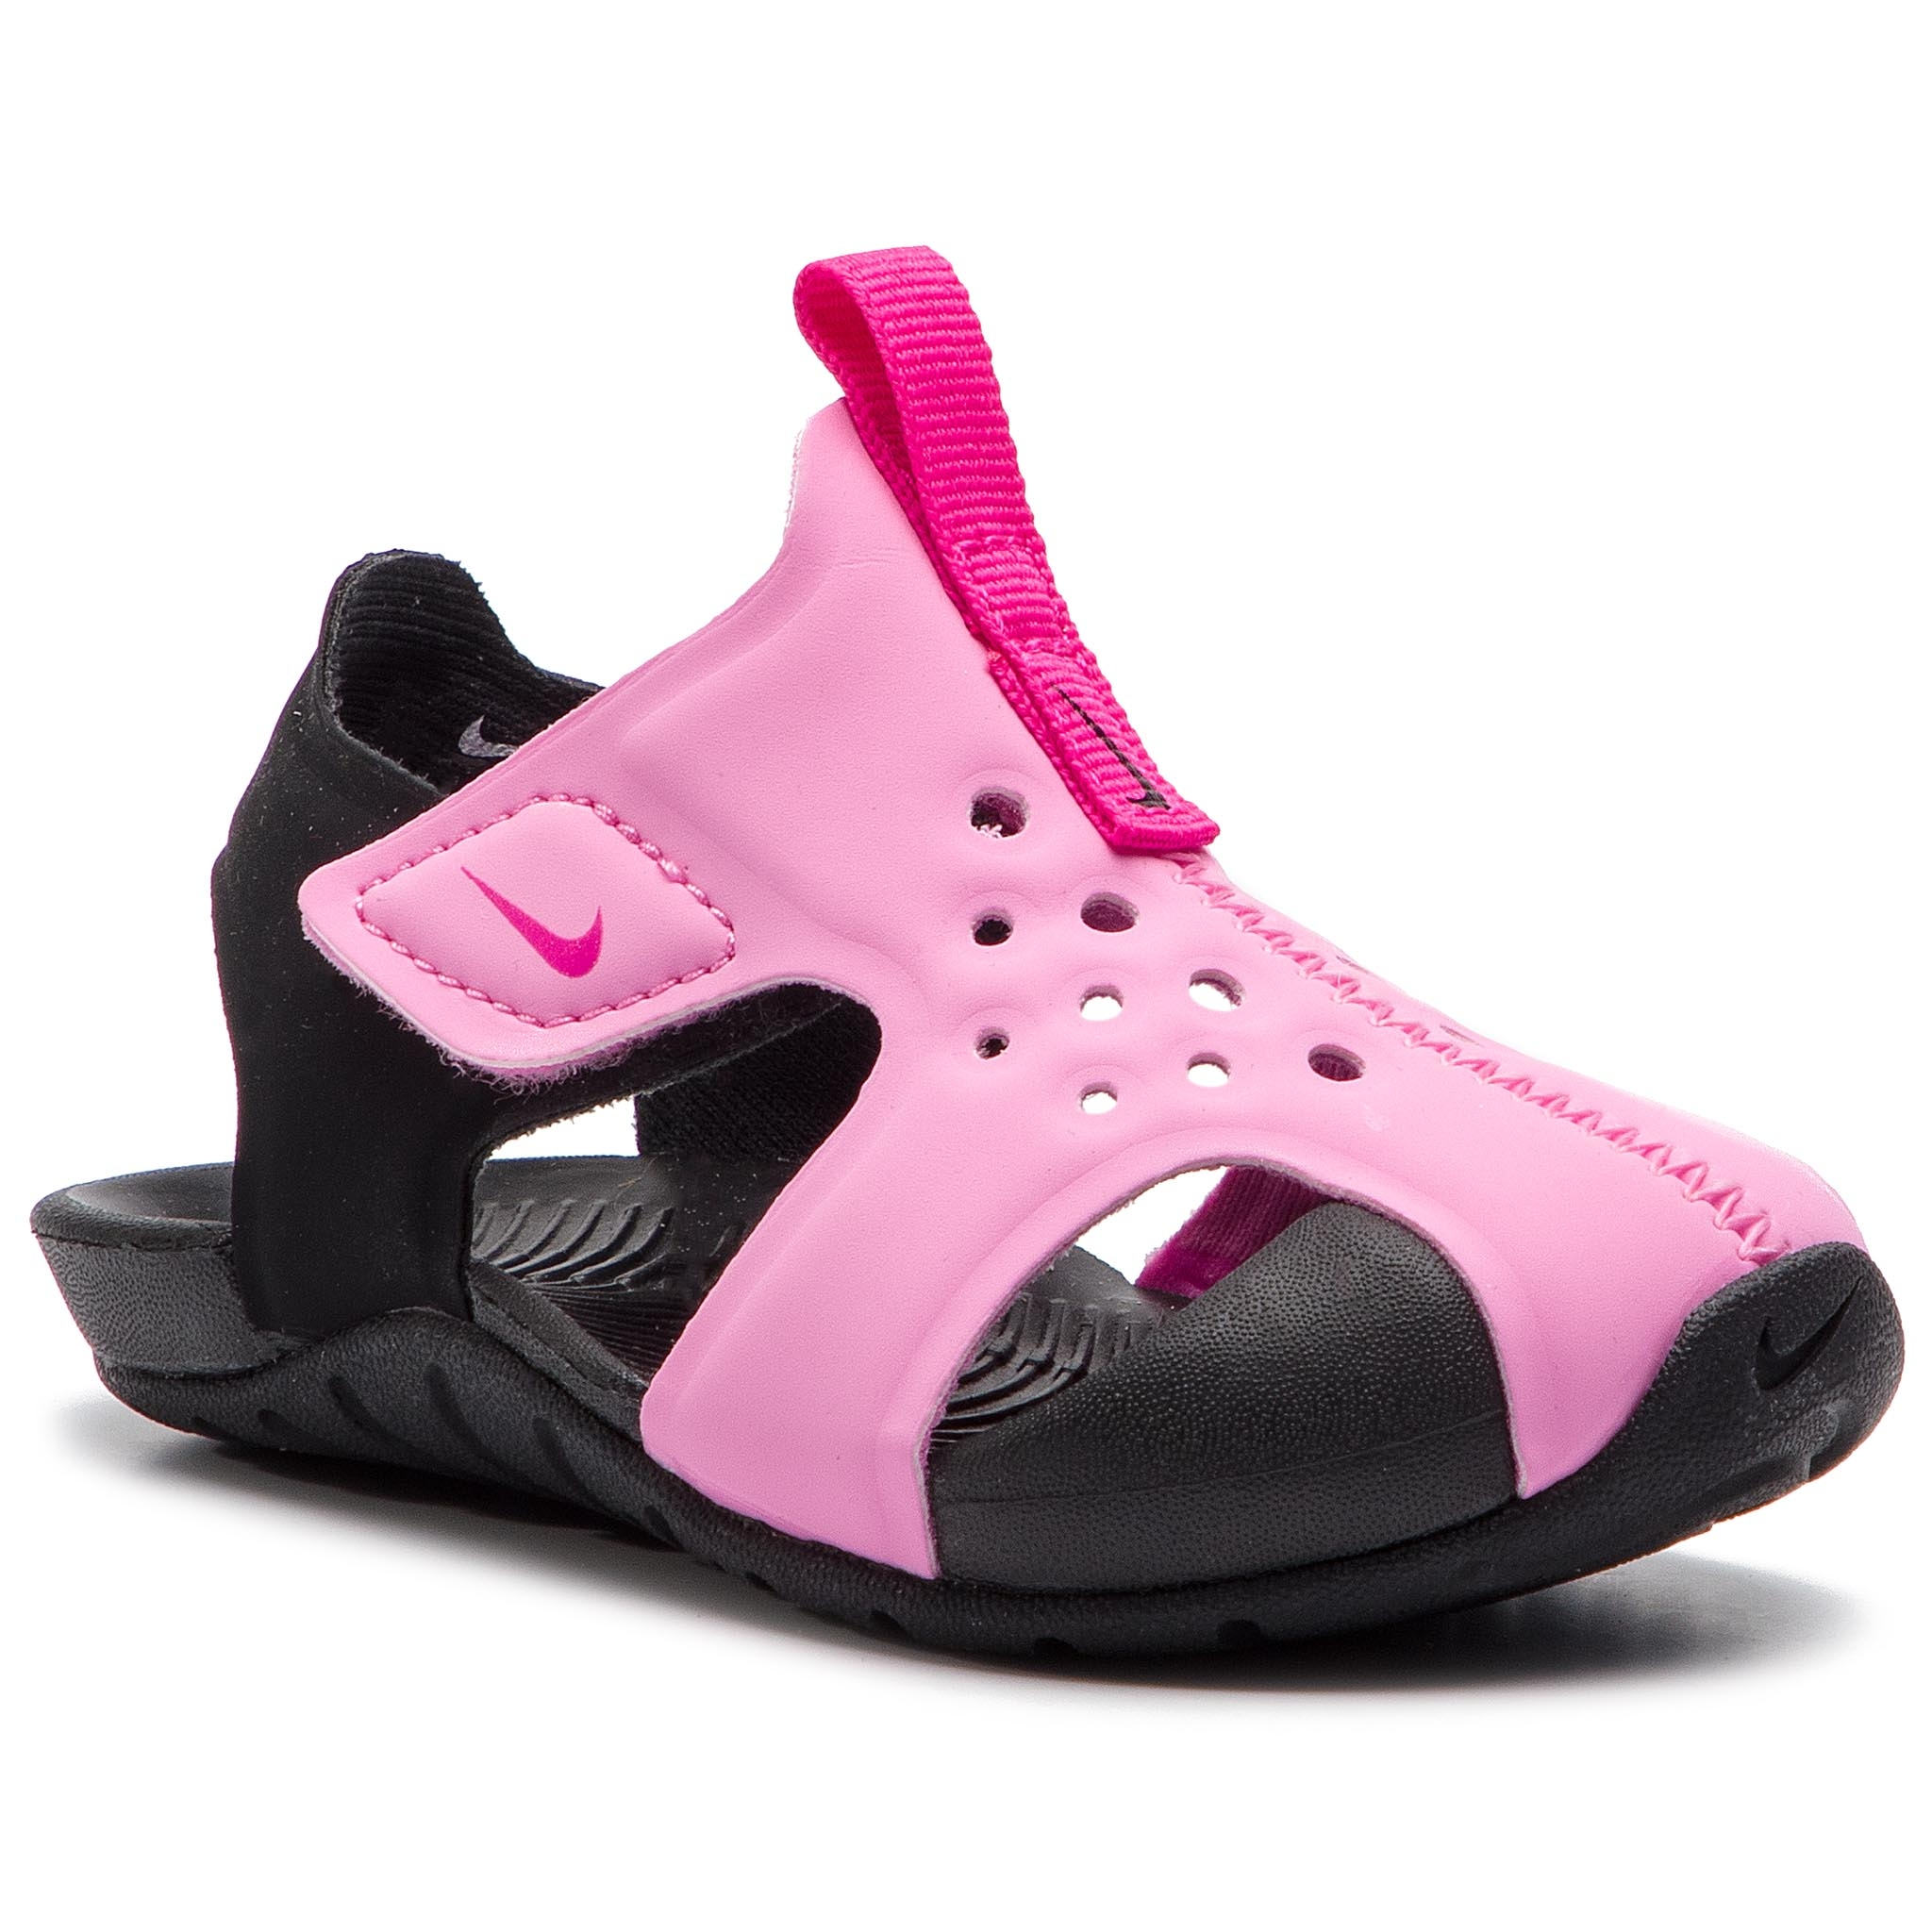 a39d08ab1485 Sandály NIKE - Sunray Protect 2 (TD) 943827 602 Psychic Pink Laser Fuchsia